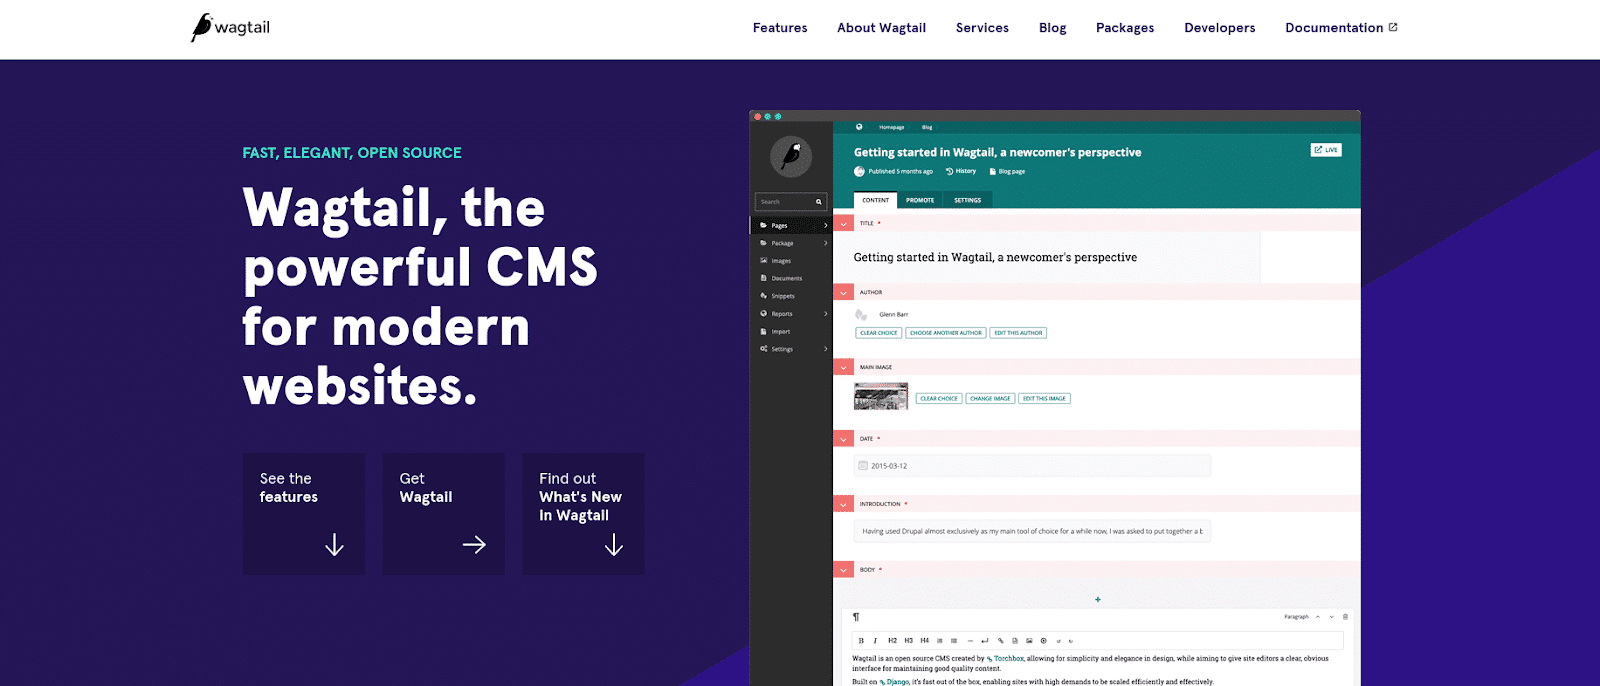 Screenshot of the Wagtail CMS homepage.